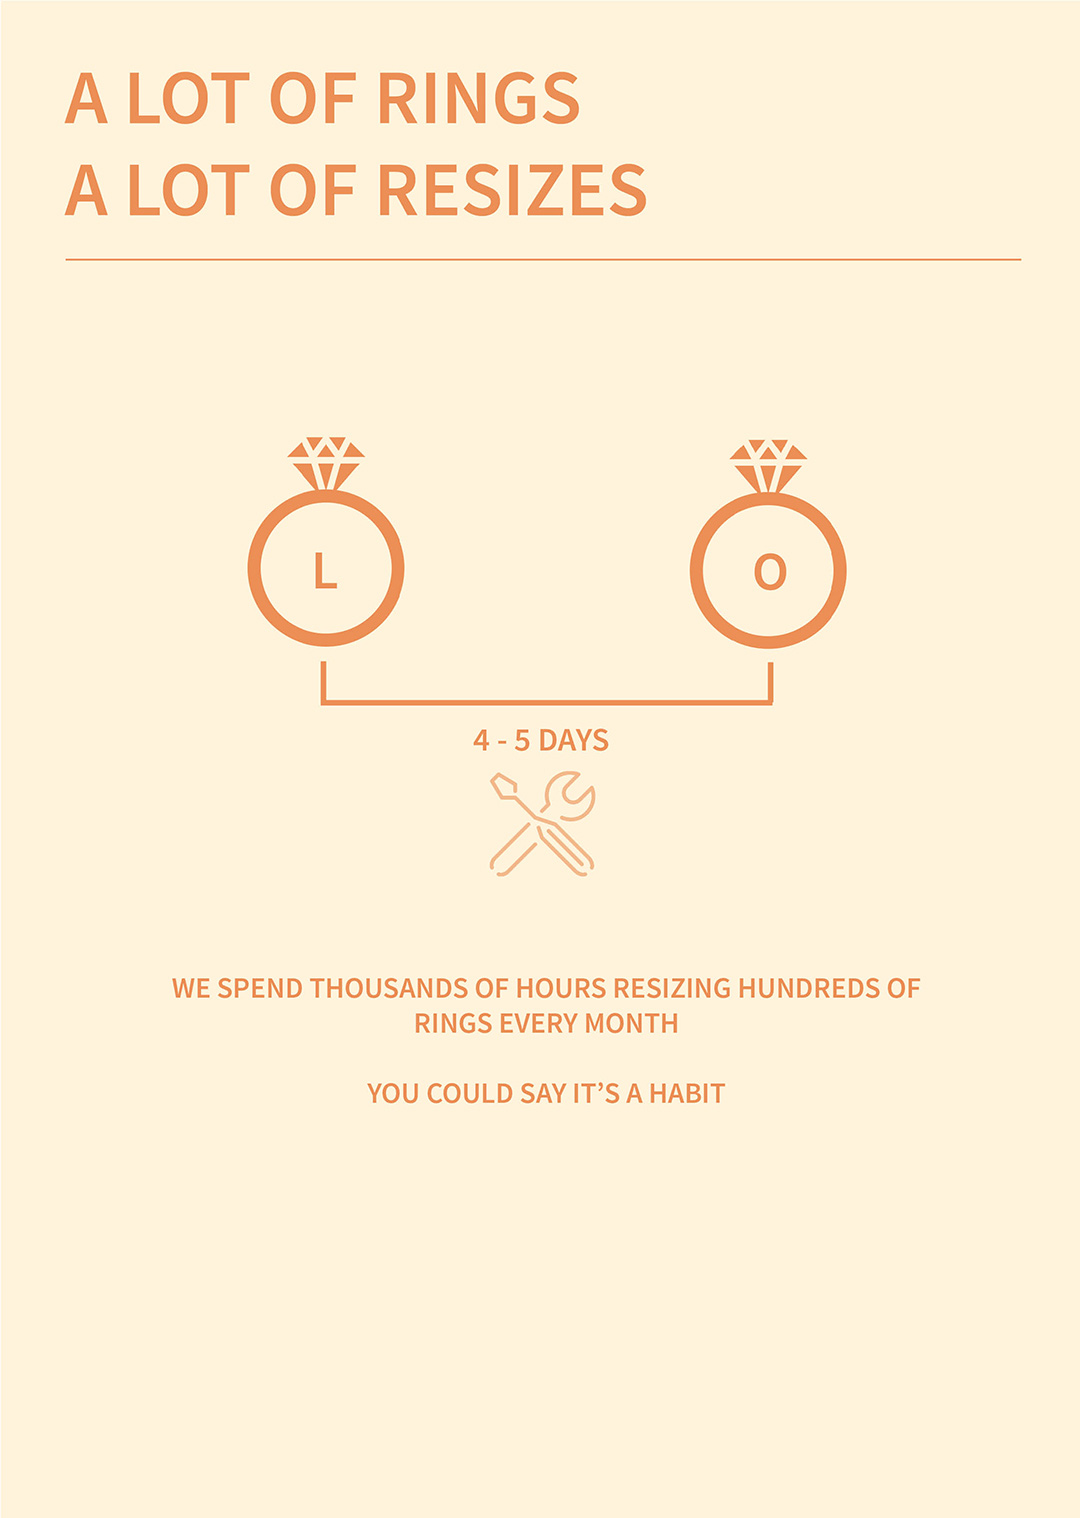 How Many Rings We Resize Per Month